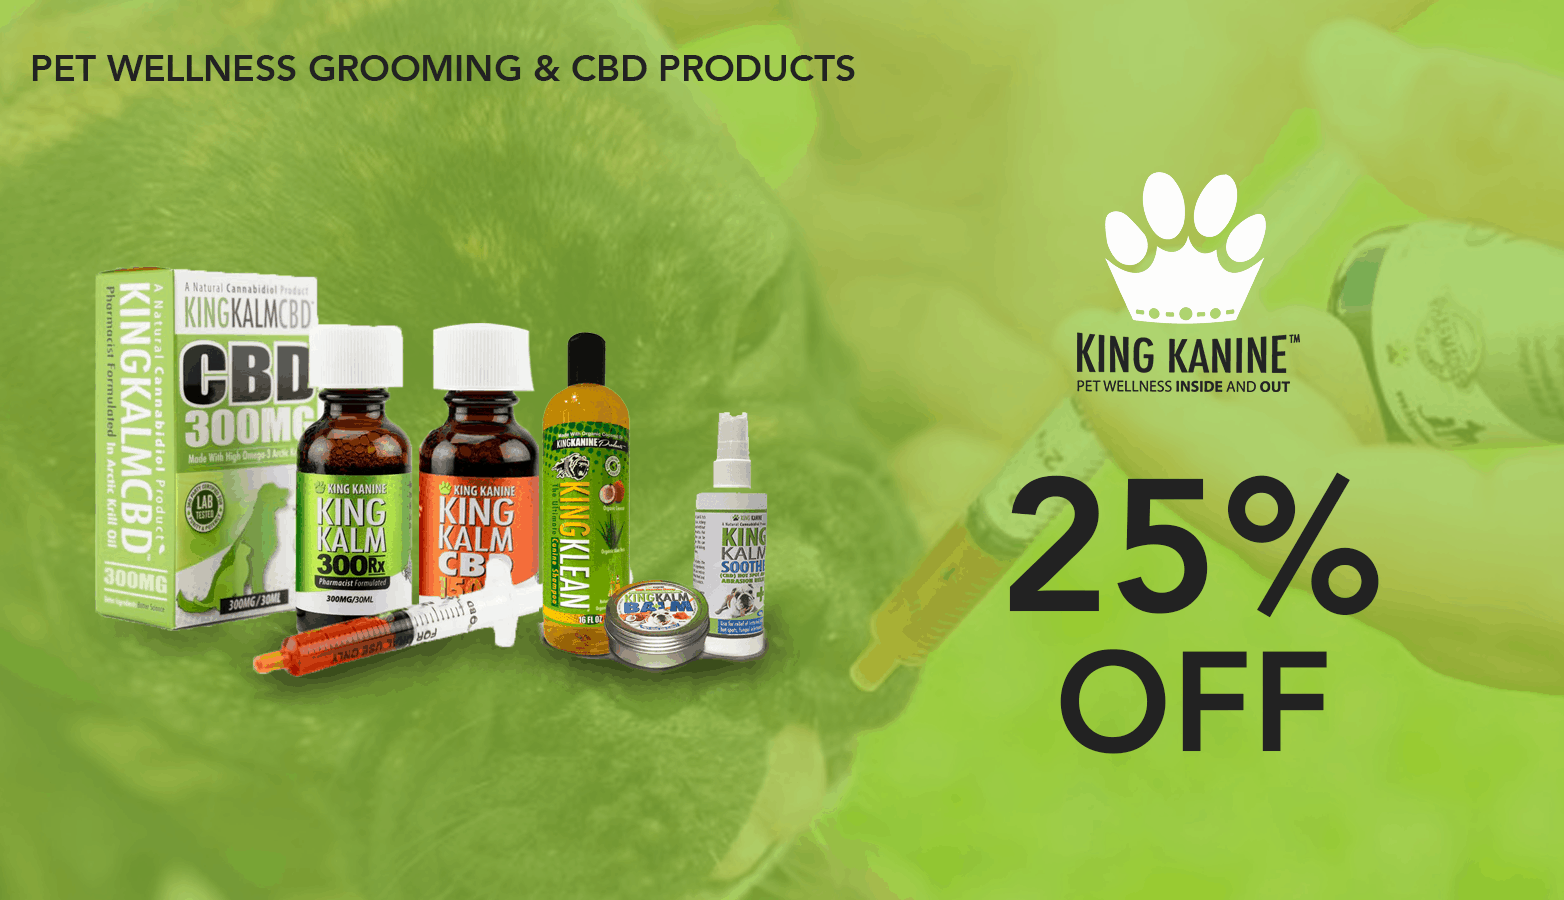 King Kanine CBD Coupon Code discounts promos save on cannabis online Website redesign